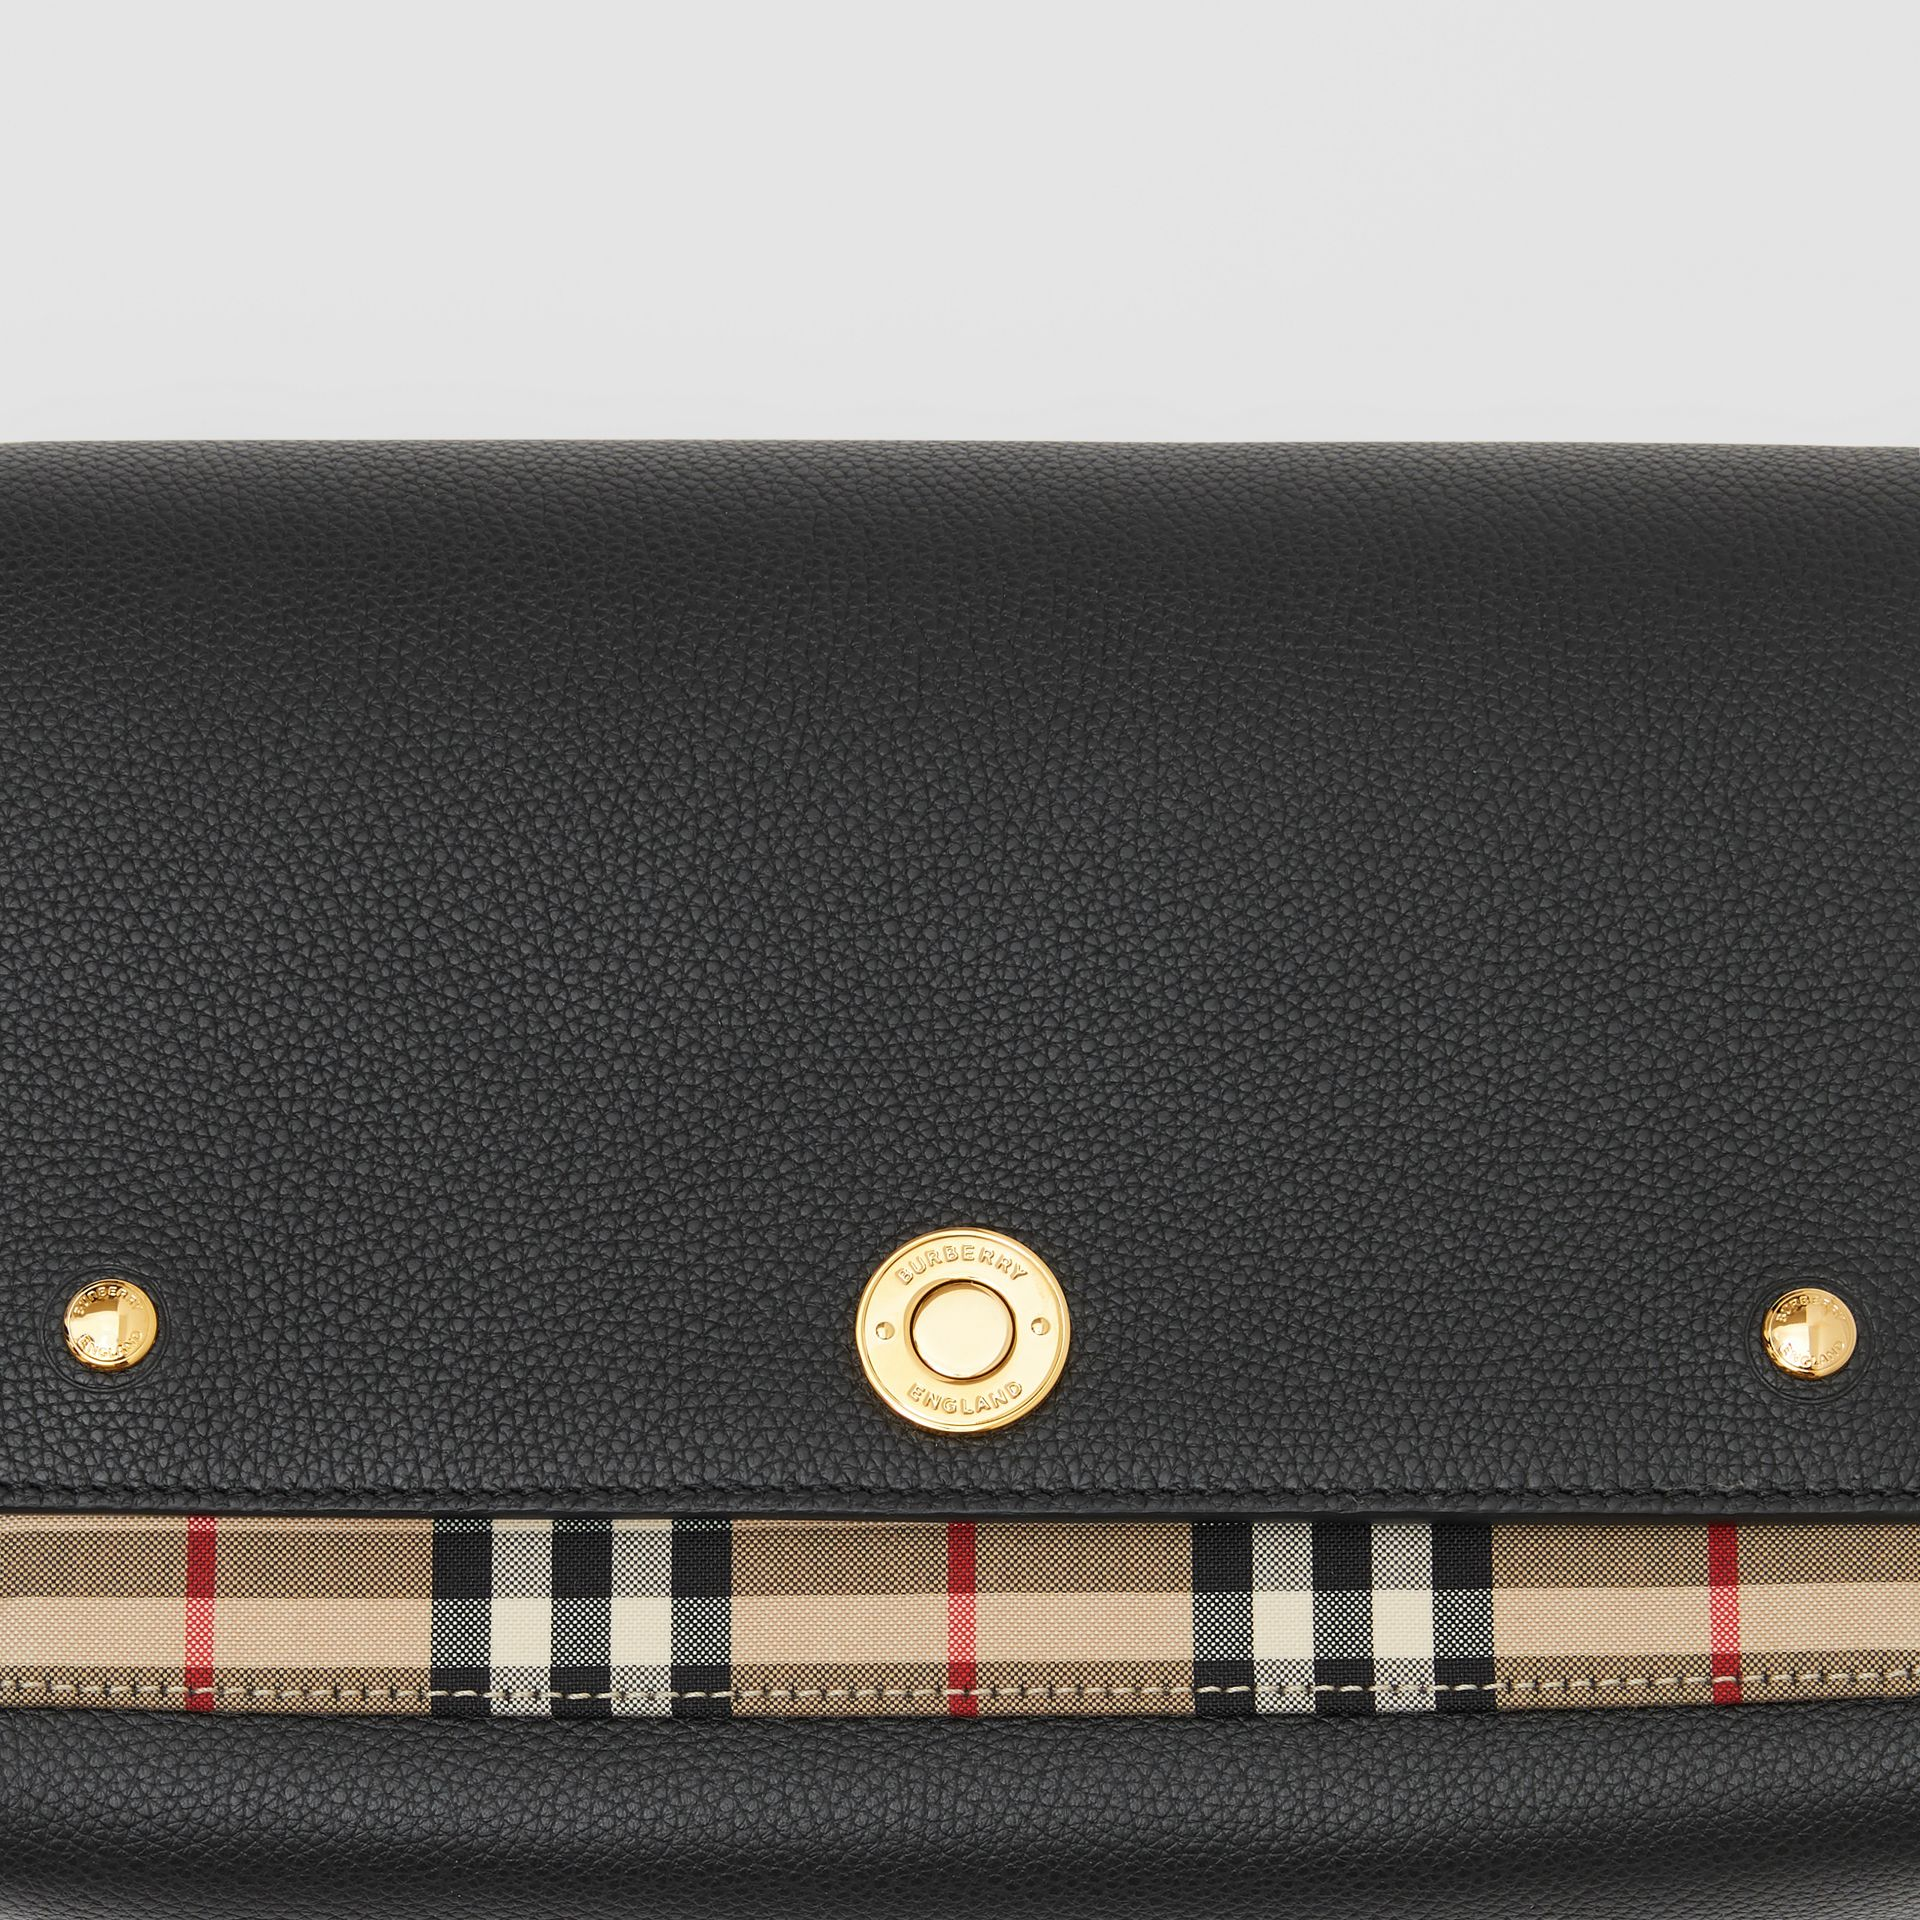 Leather and Vintage Check Note Crossbody Bag in Black - Women | Burberry - gallery image 1